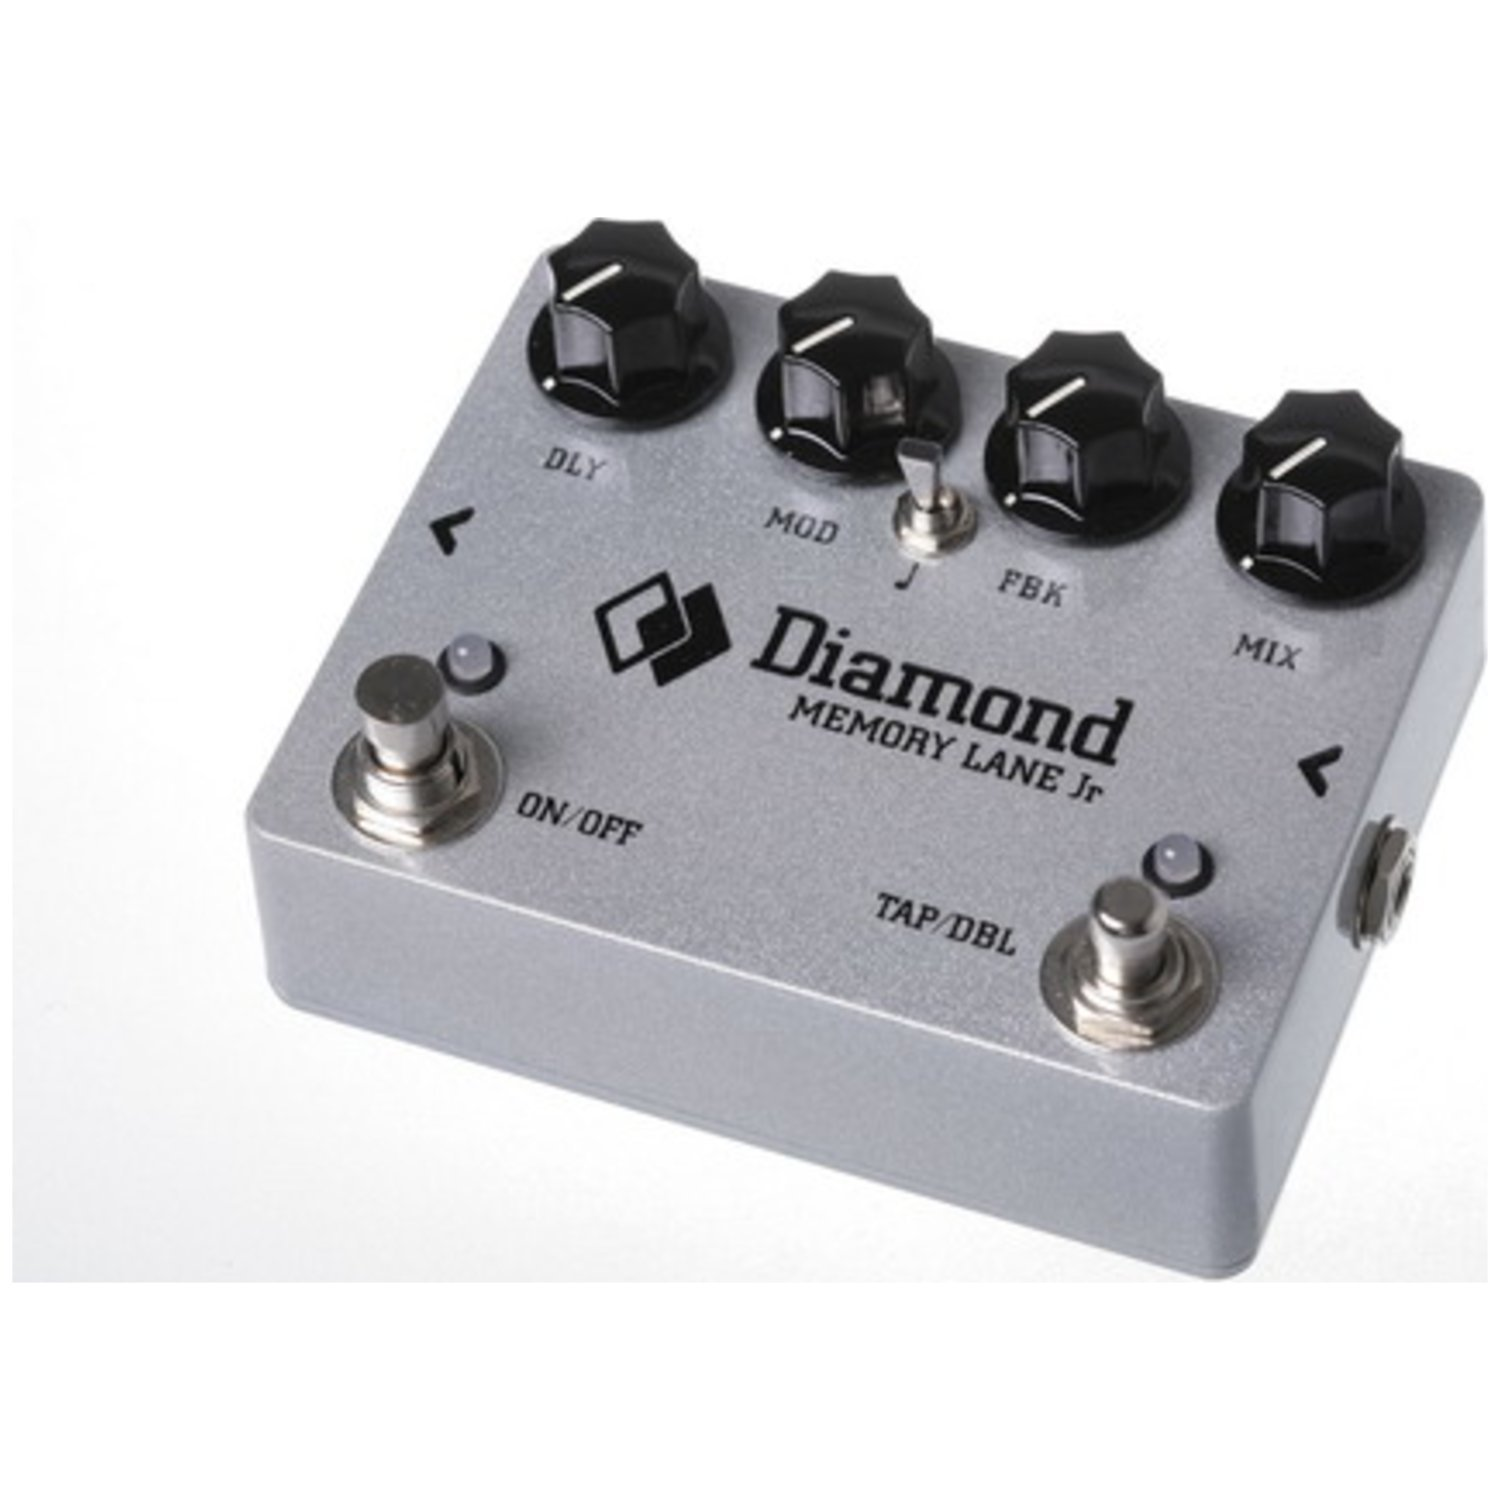 Diamond Pedals Memory Lane Jr